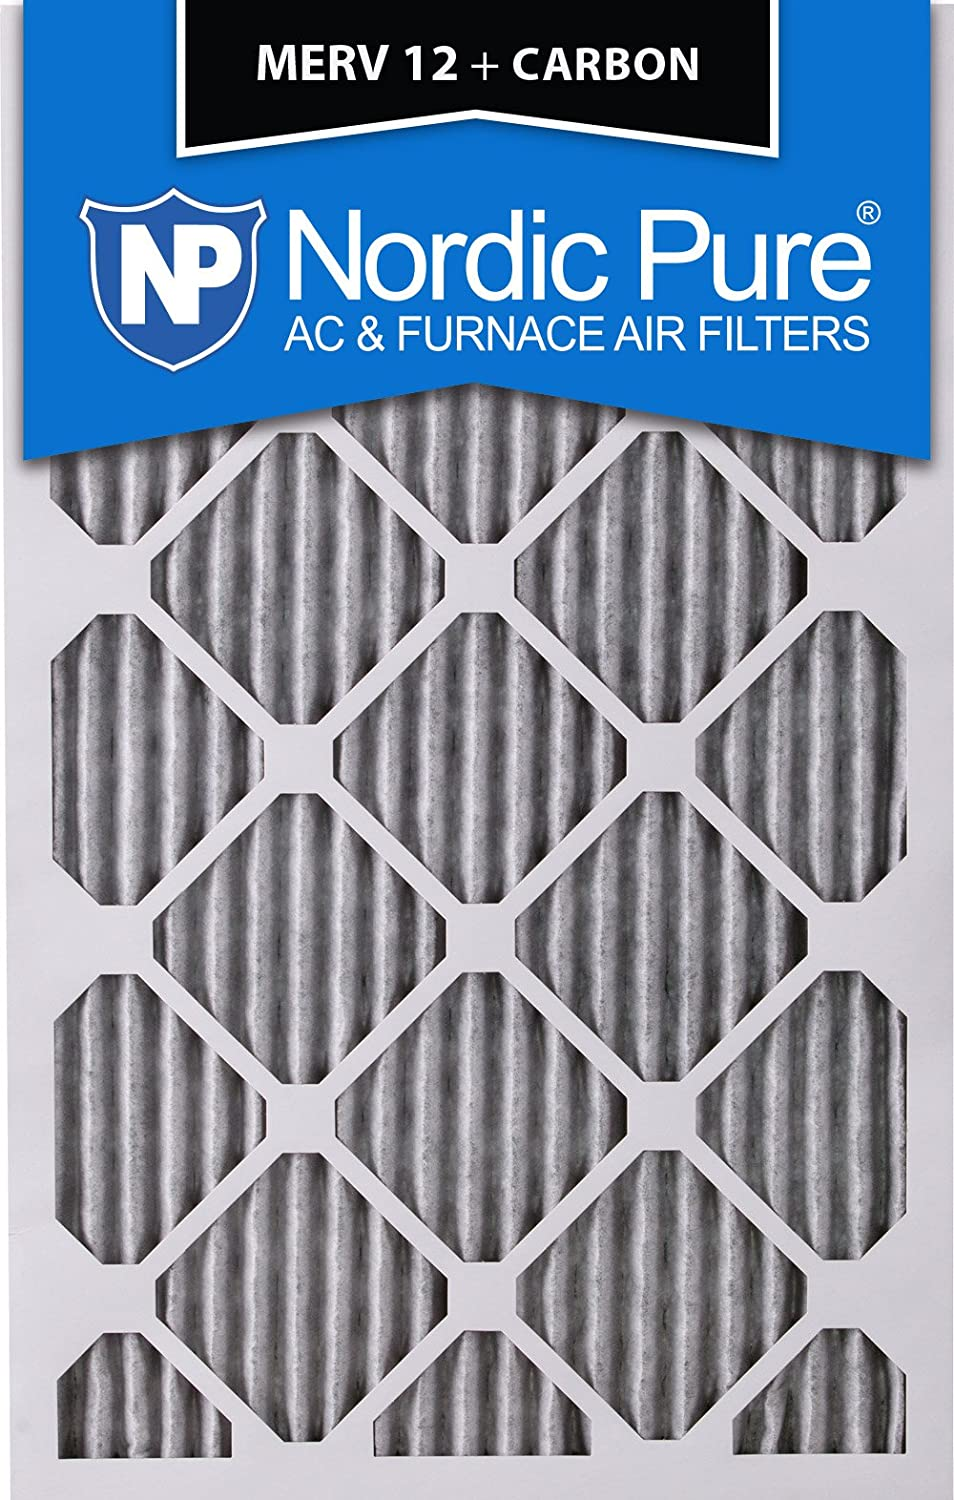 Nordic Pure 18x25x2 MERV 12 Pleated Plus Carbon AC Furnace Air Filters 18 x 25 x 2 3 Piece